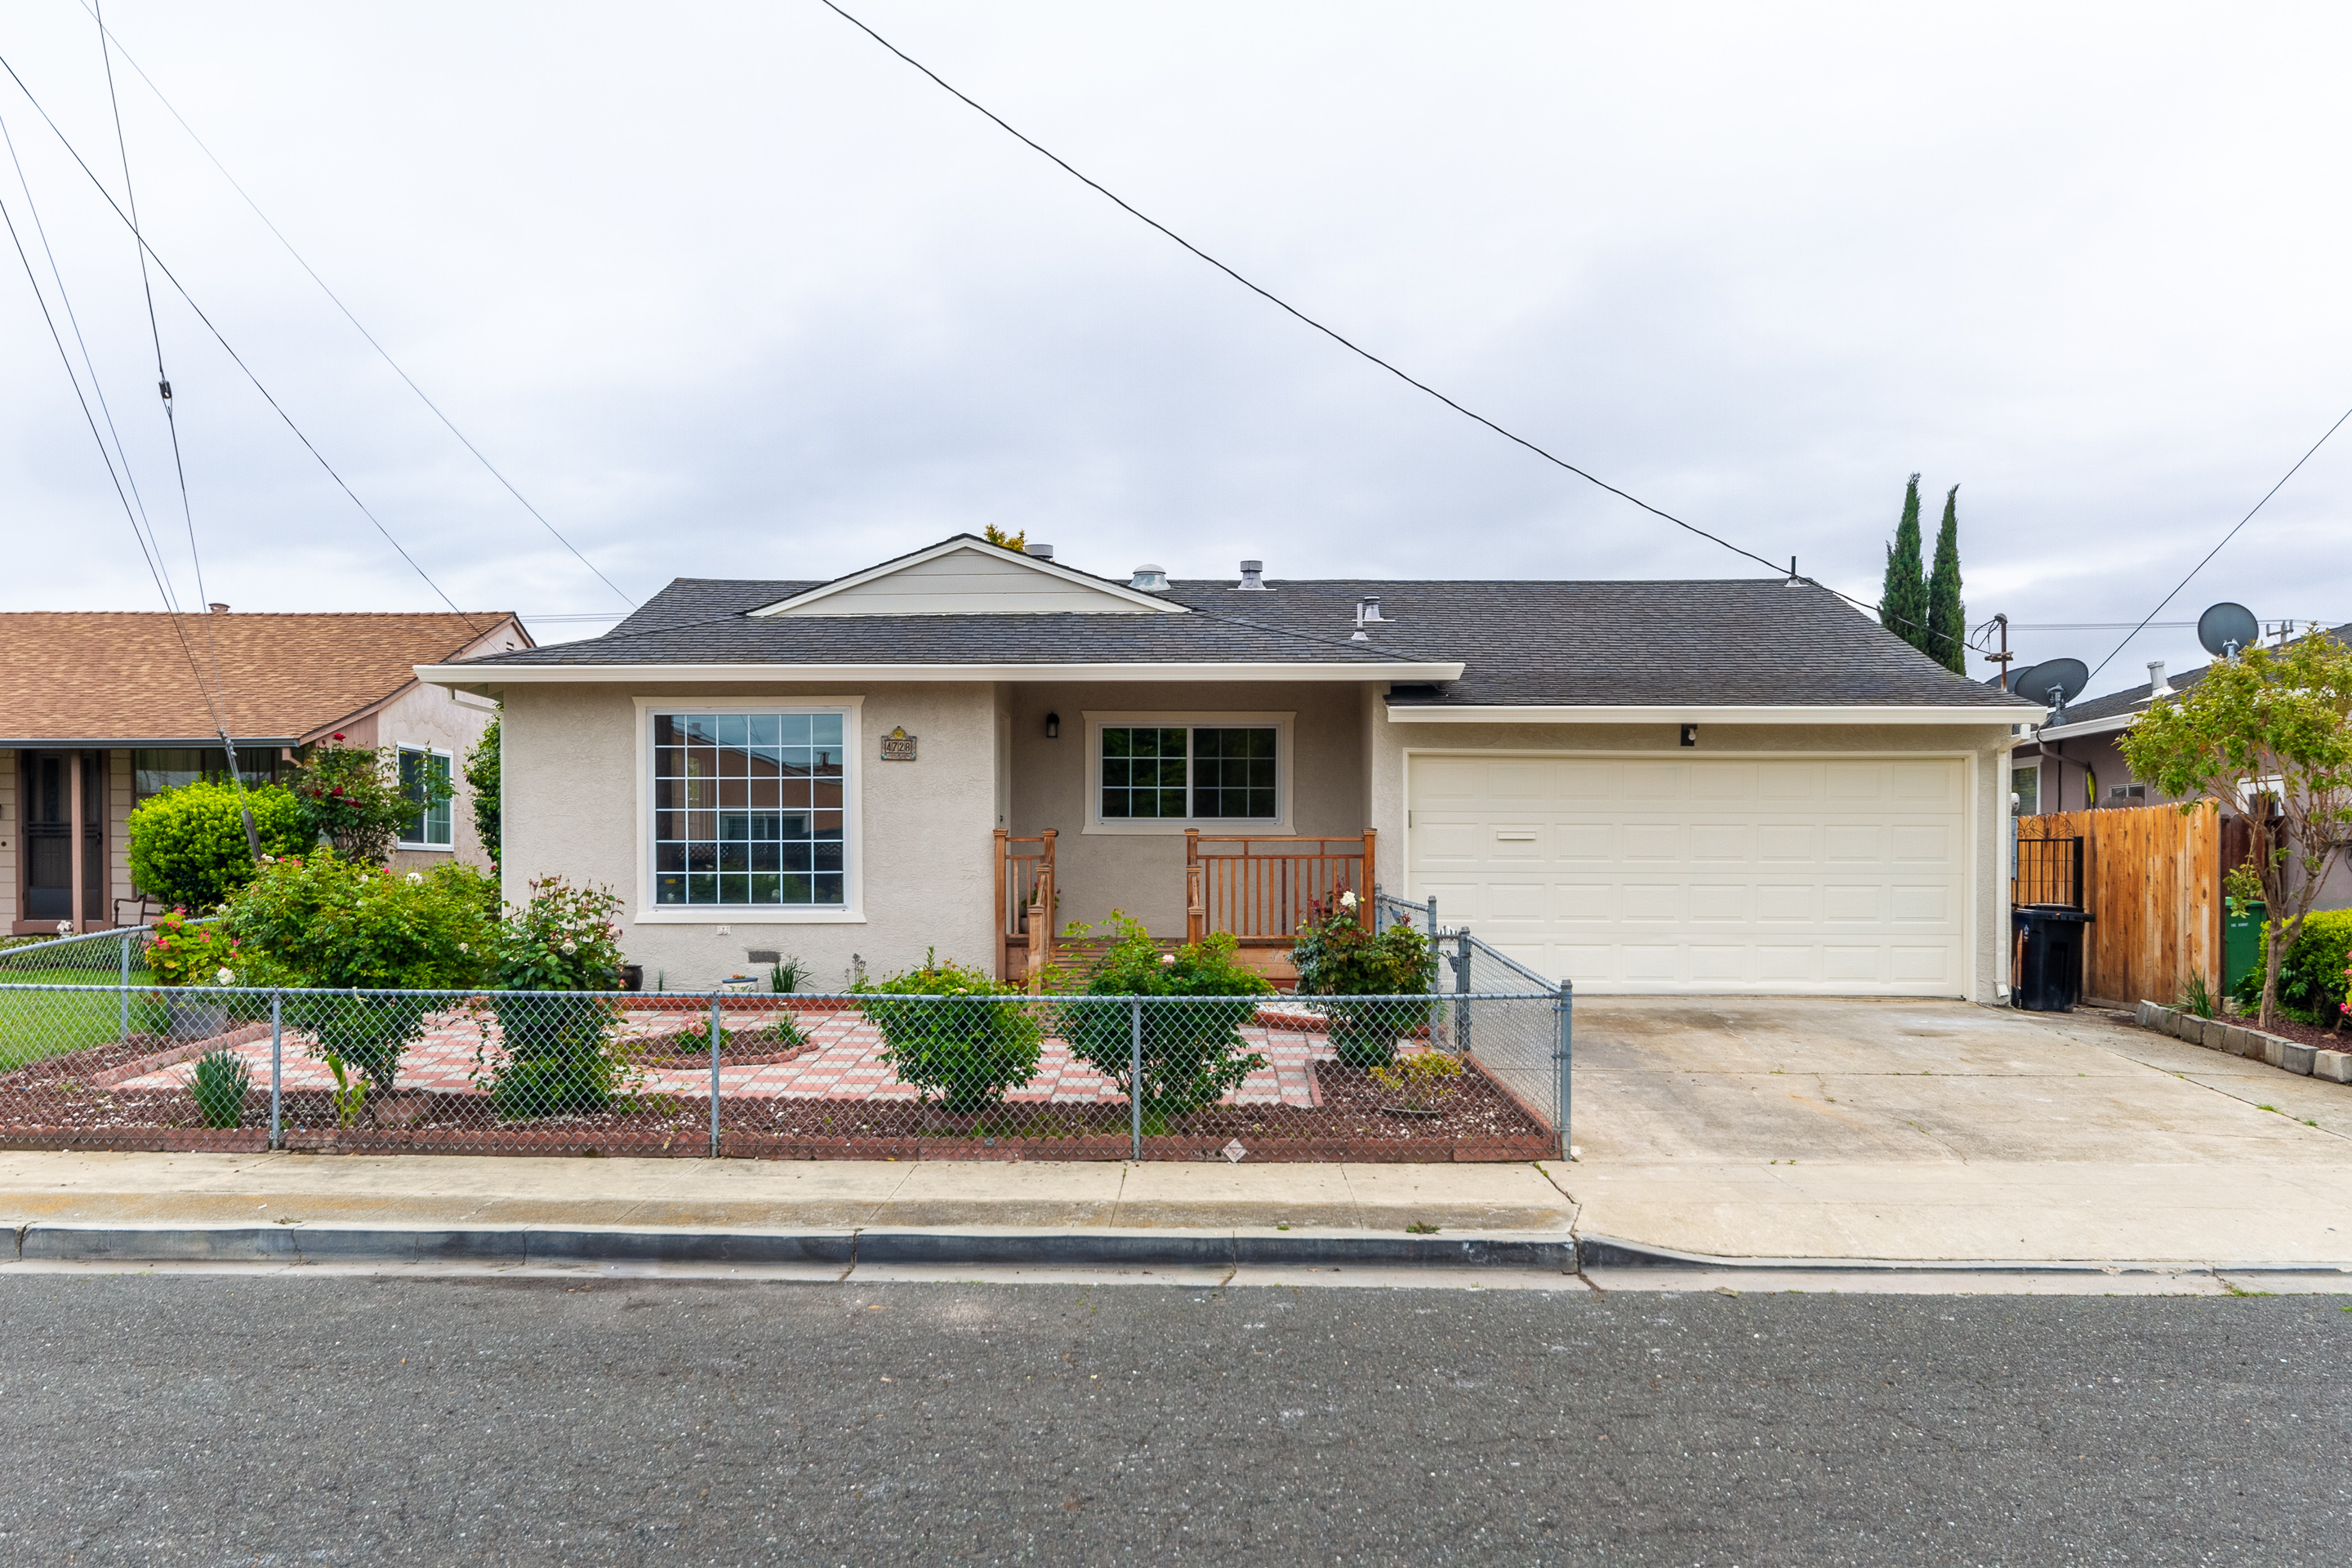 4728 Granado Ave., Fremont, CA 94536 - New Listing in Fremont, CA by Sunil Sethi Real Estate - Voted Best in Fremont 2019, 2018